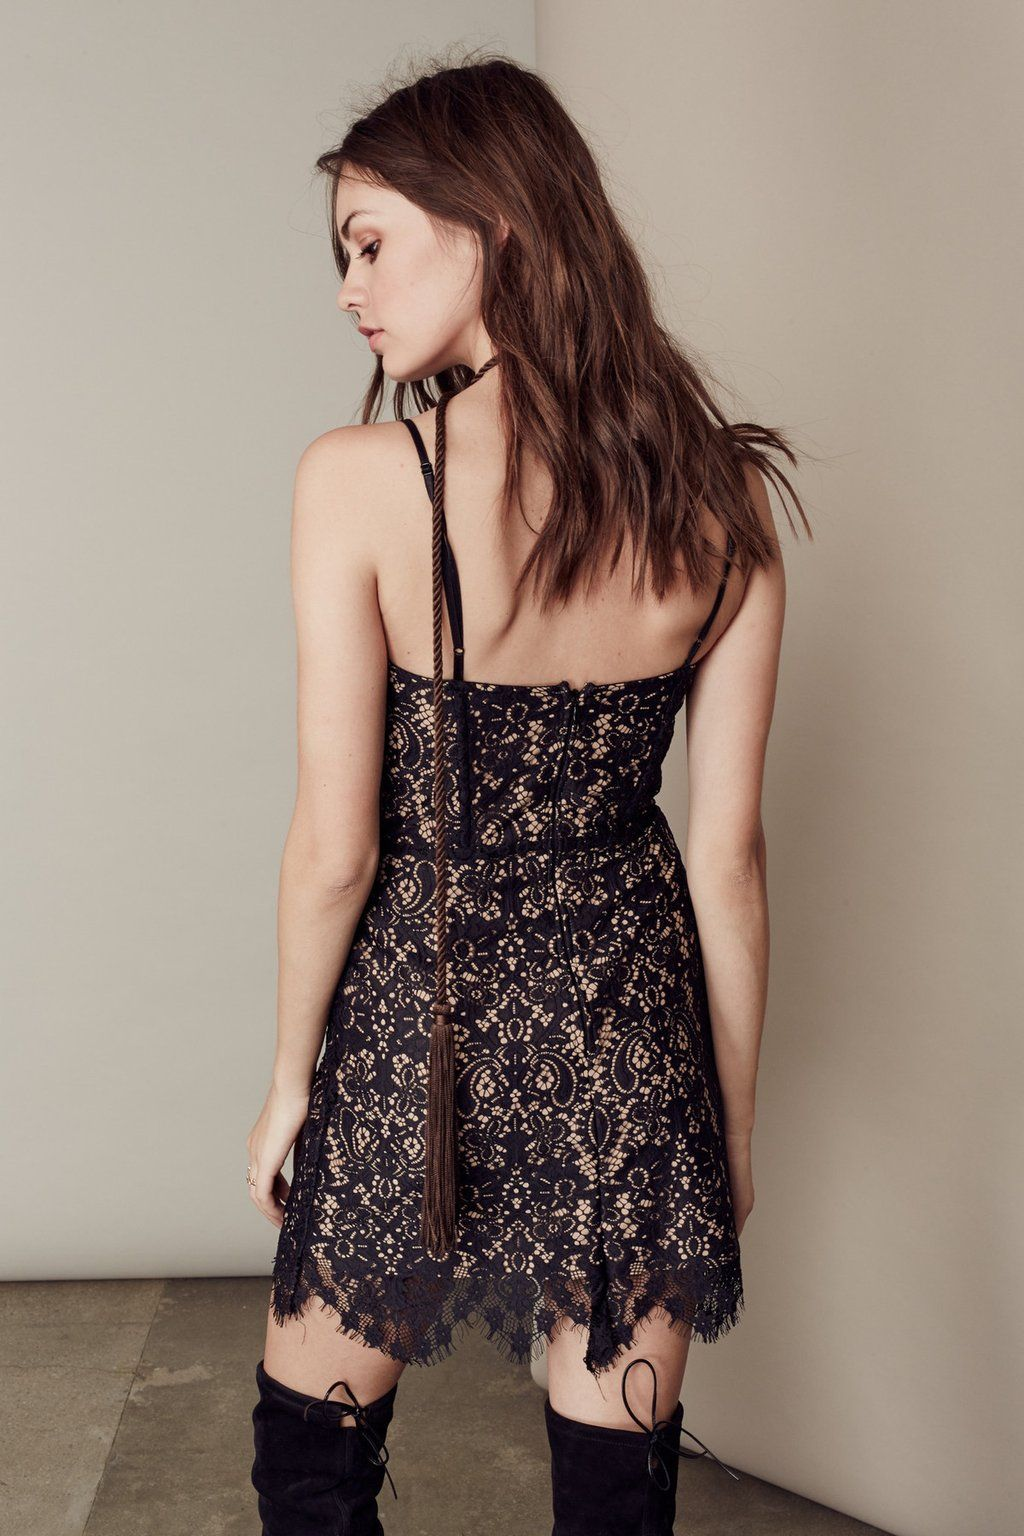 079d1af404 For Love And Lemons Vika Dress